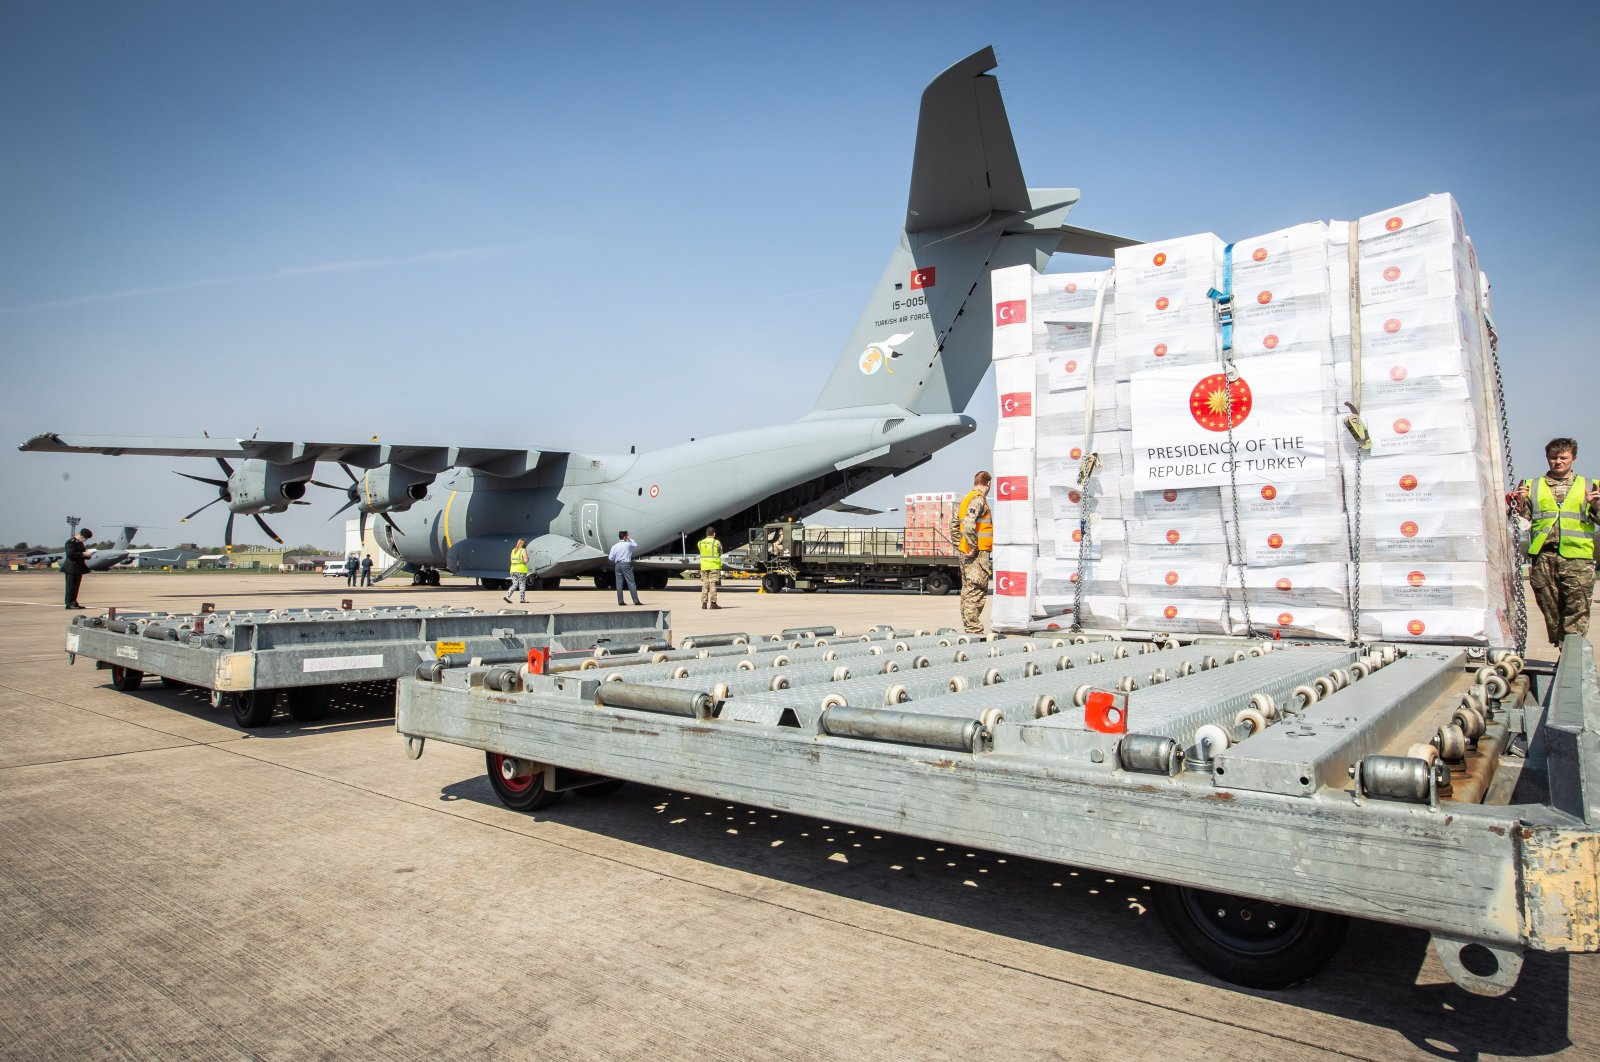 Crucial supplies of personal protective equipment (PPE) for medical staff are delivered from Turkey to a Royal Air Force base for distribution around the country, amid the coronavirus outbreak, in Carterton, Britain, April 10, 2020. (REUTERS Photo)